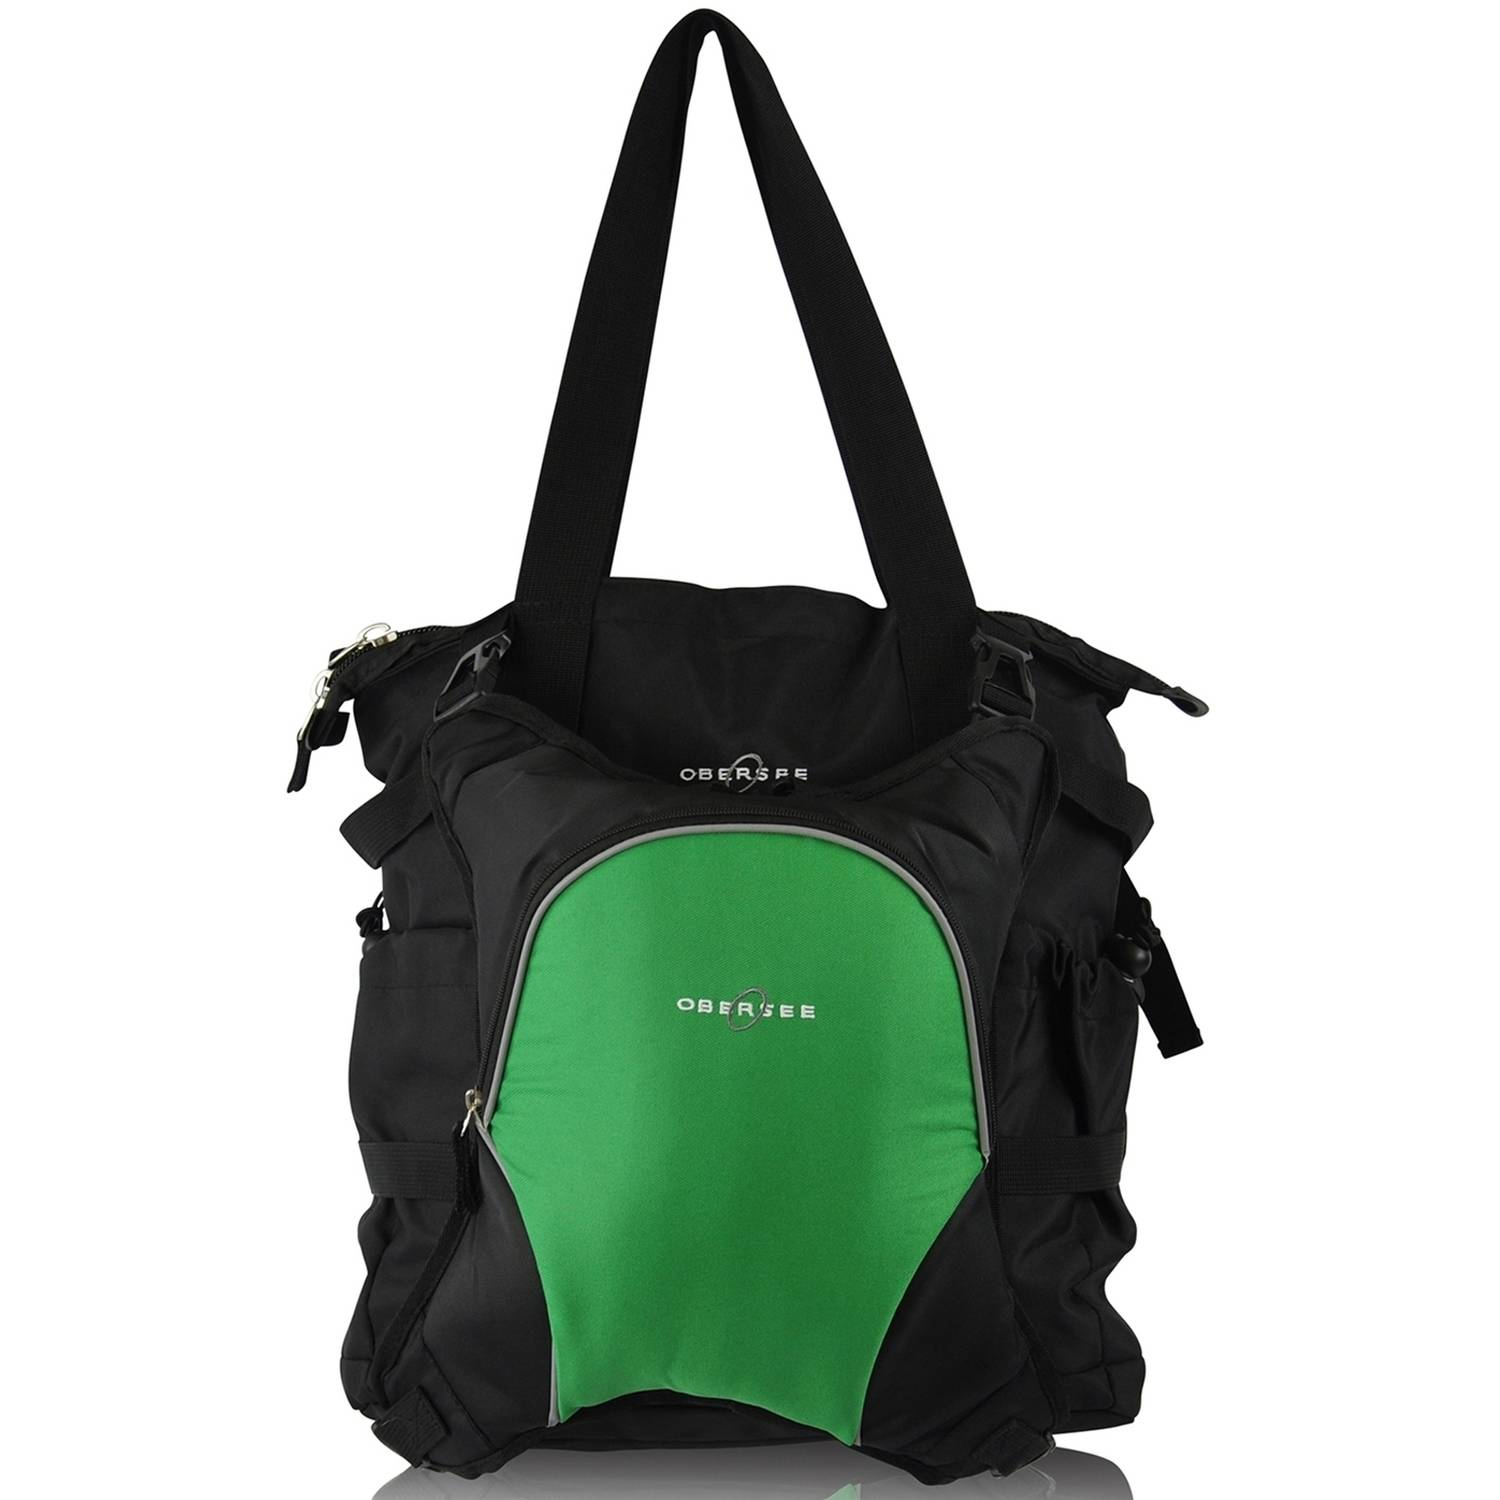 Obersee Innsbruck Diaper Bag Tote with Cooler, Black/Green